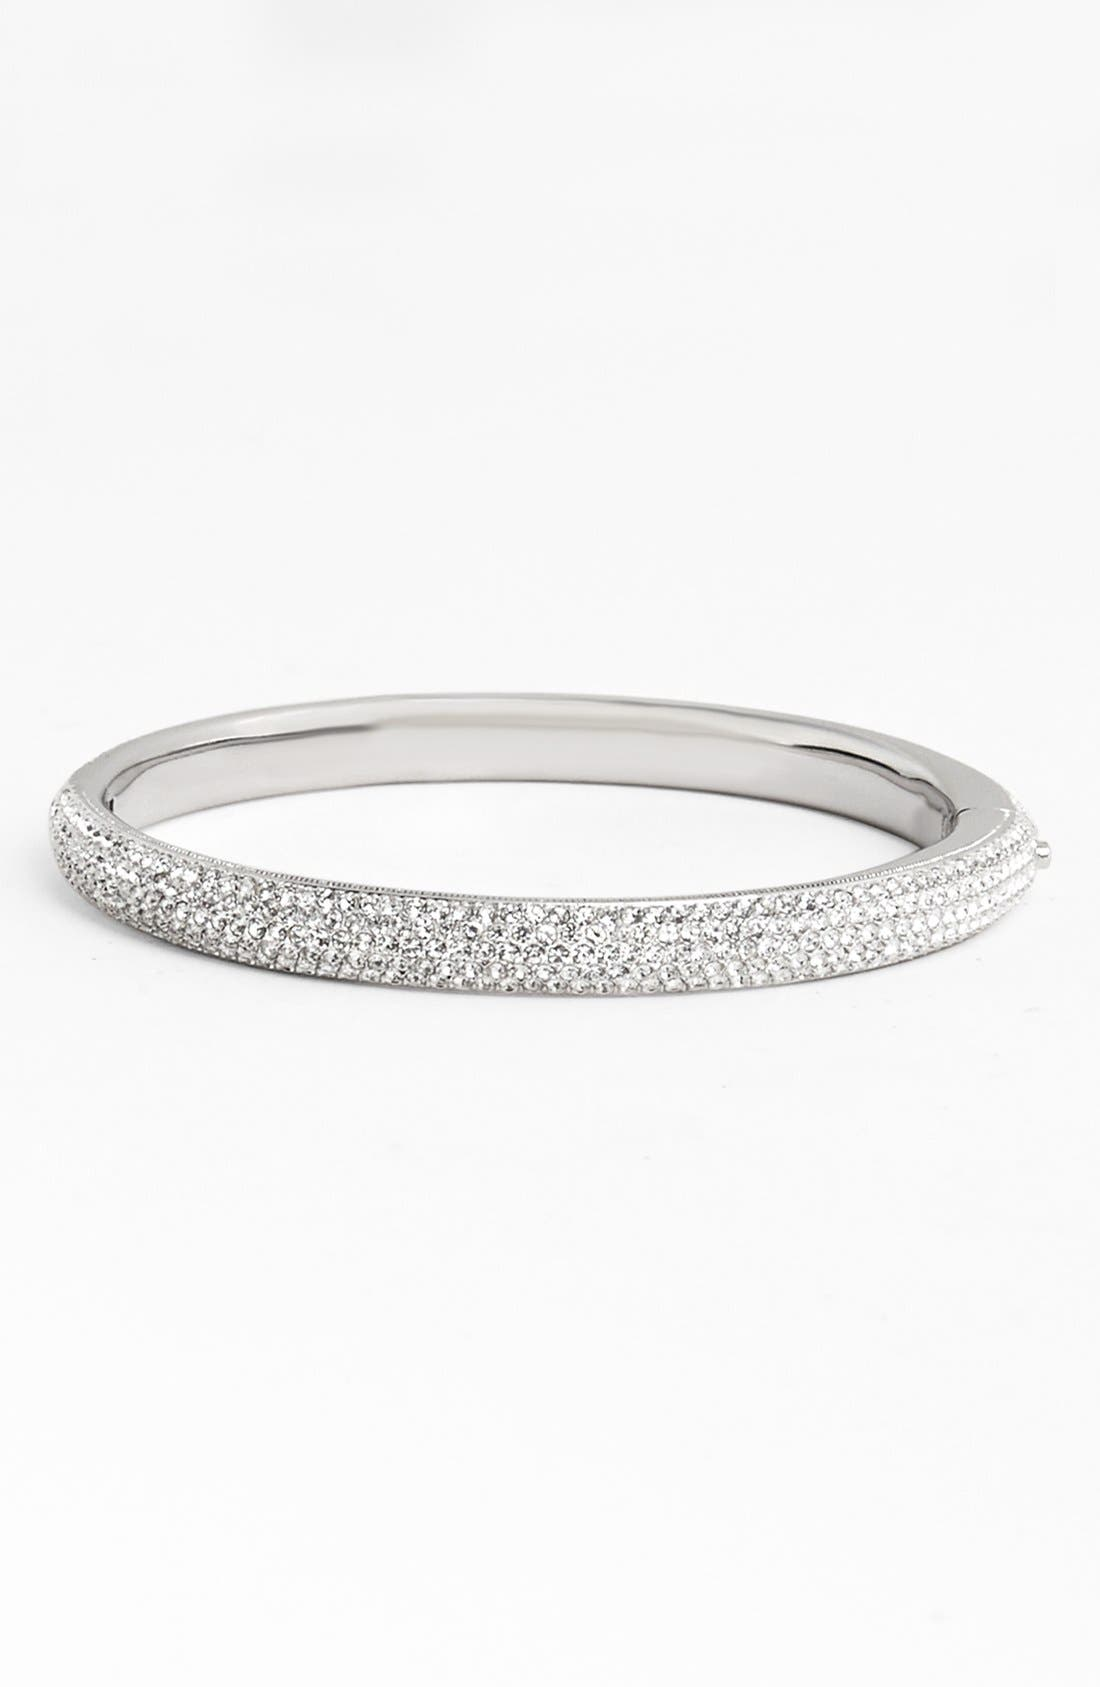 Alternate Image 1 Selected - Nadri Pavé Crystal Bangle